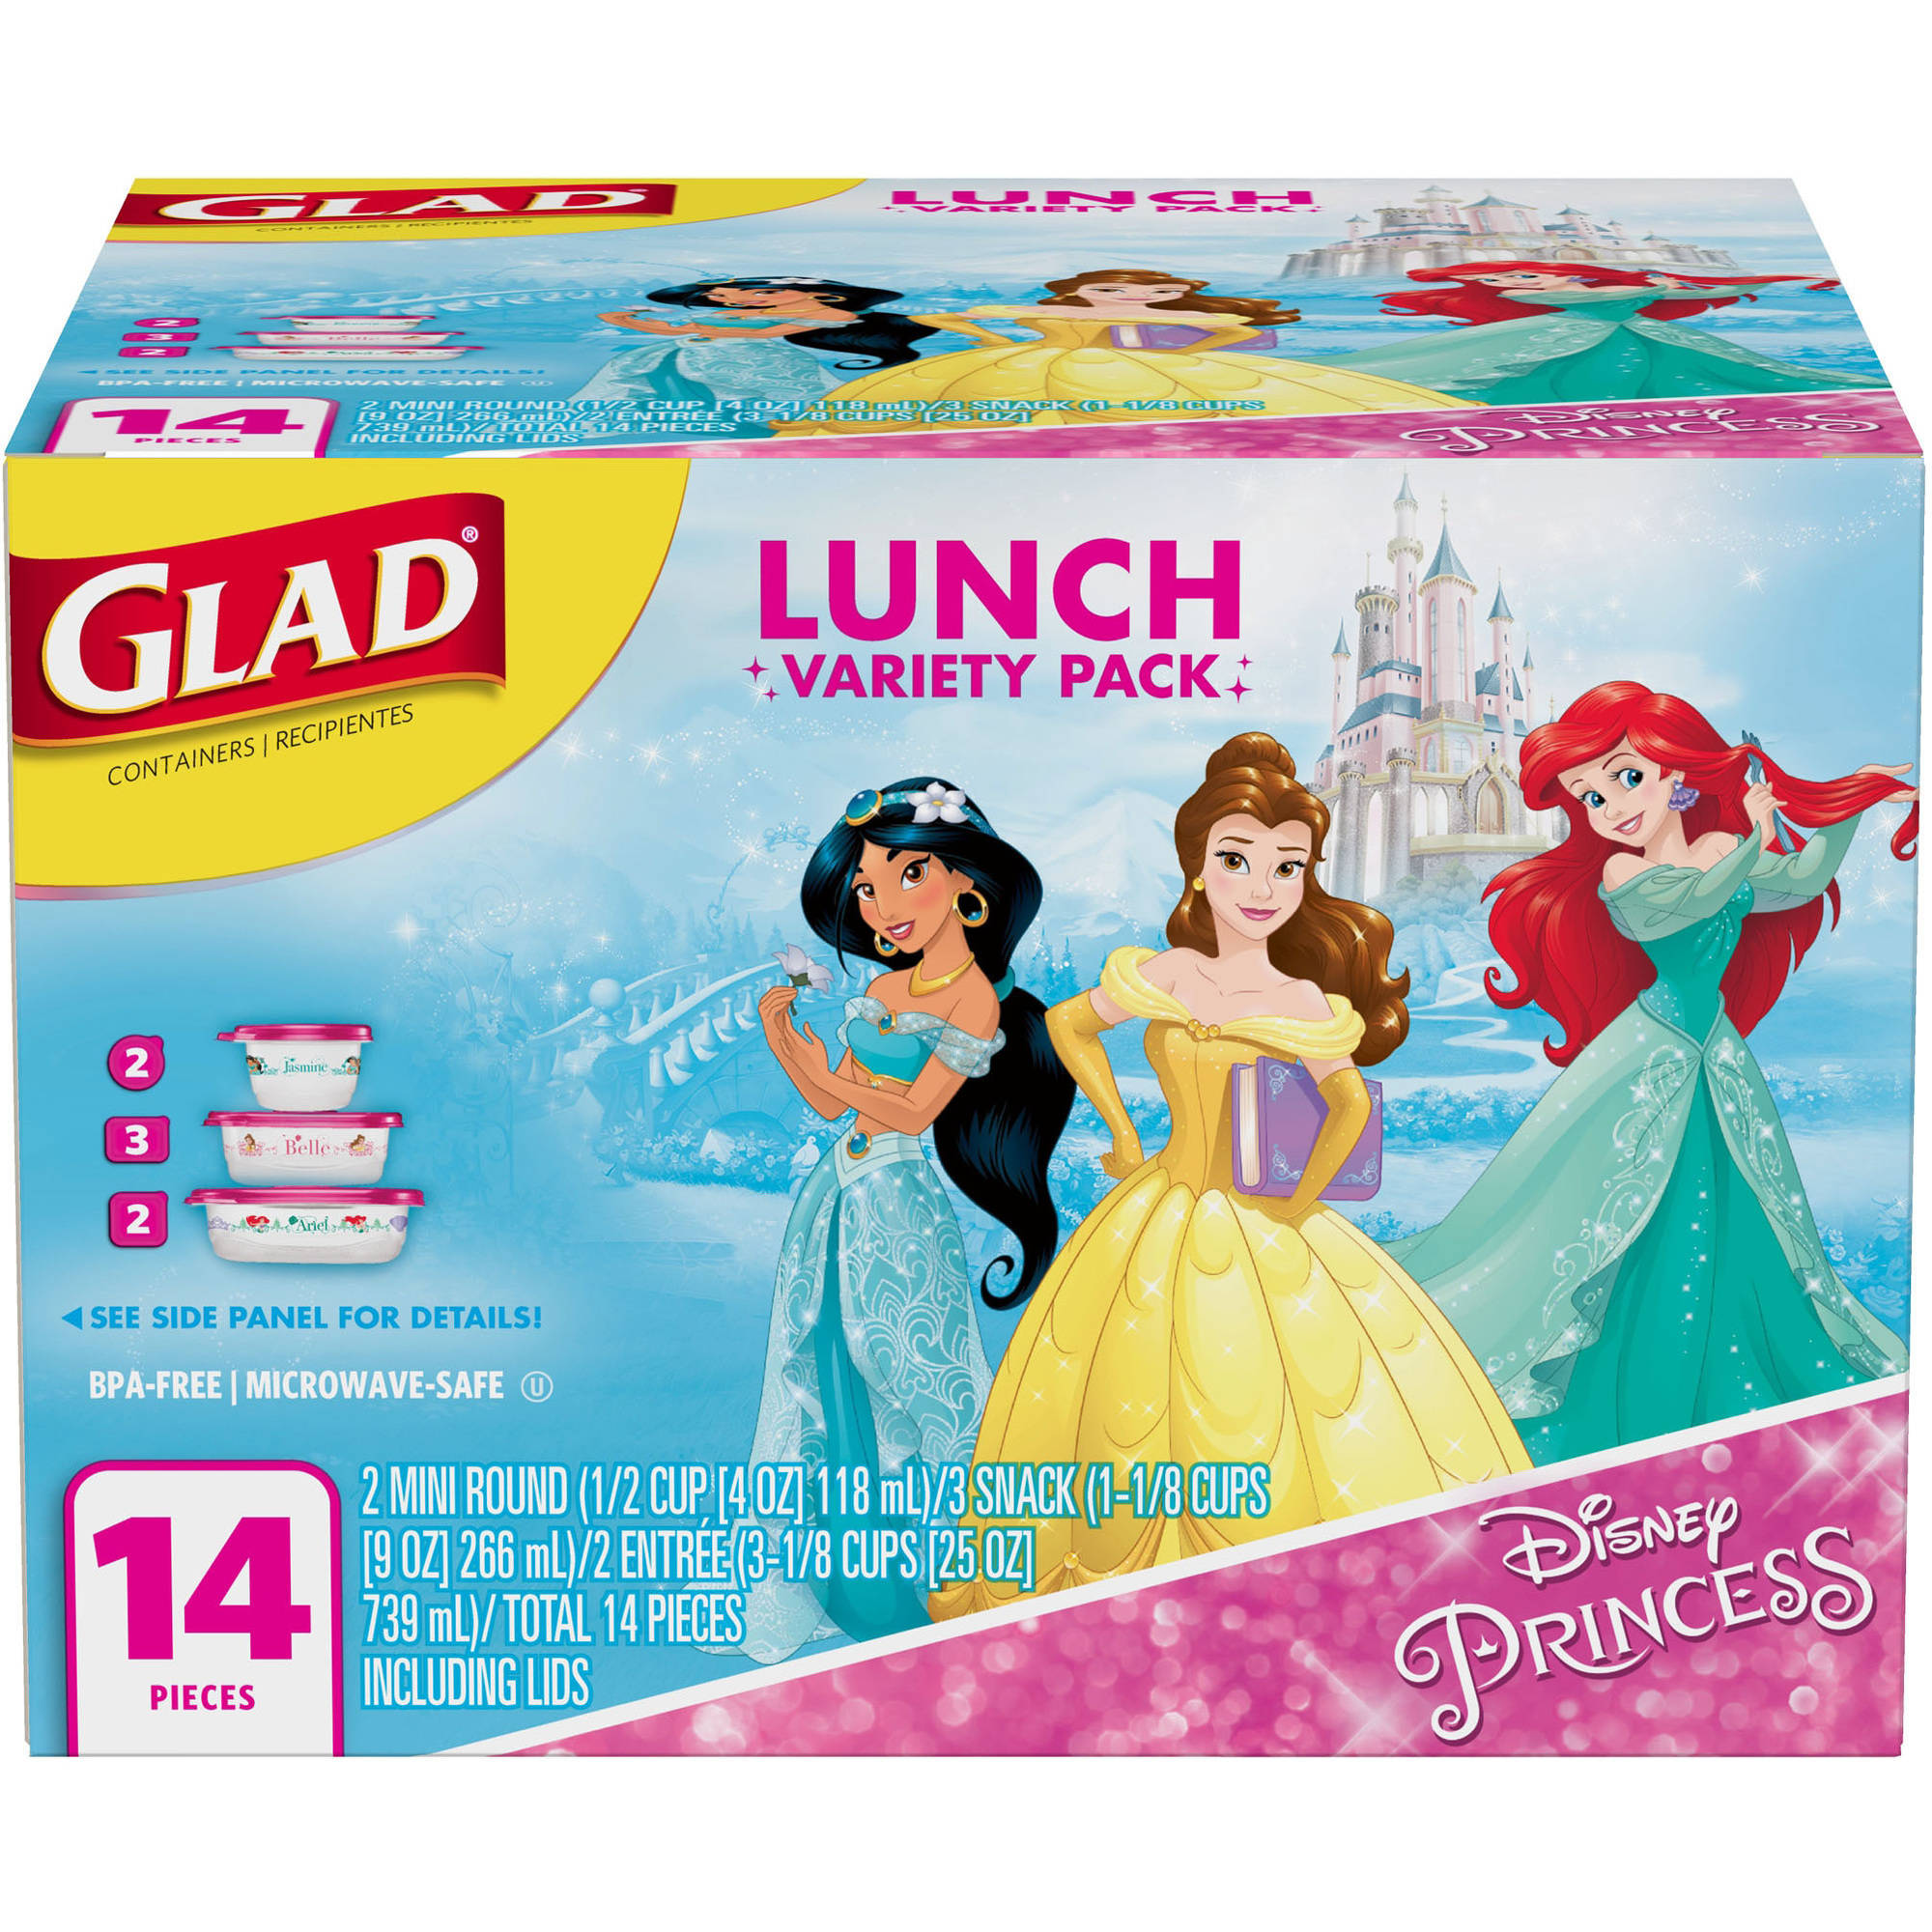 Glad Food Storage Containers, Lunch Variety Pack, Disney Princess, 14 ct